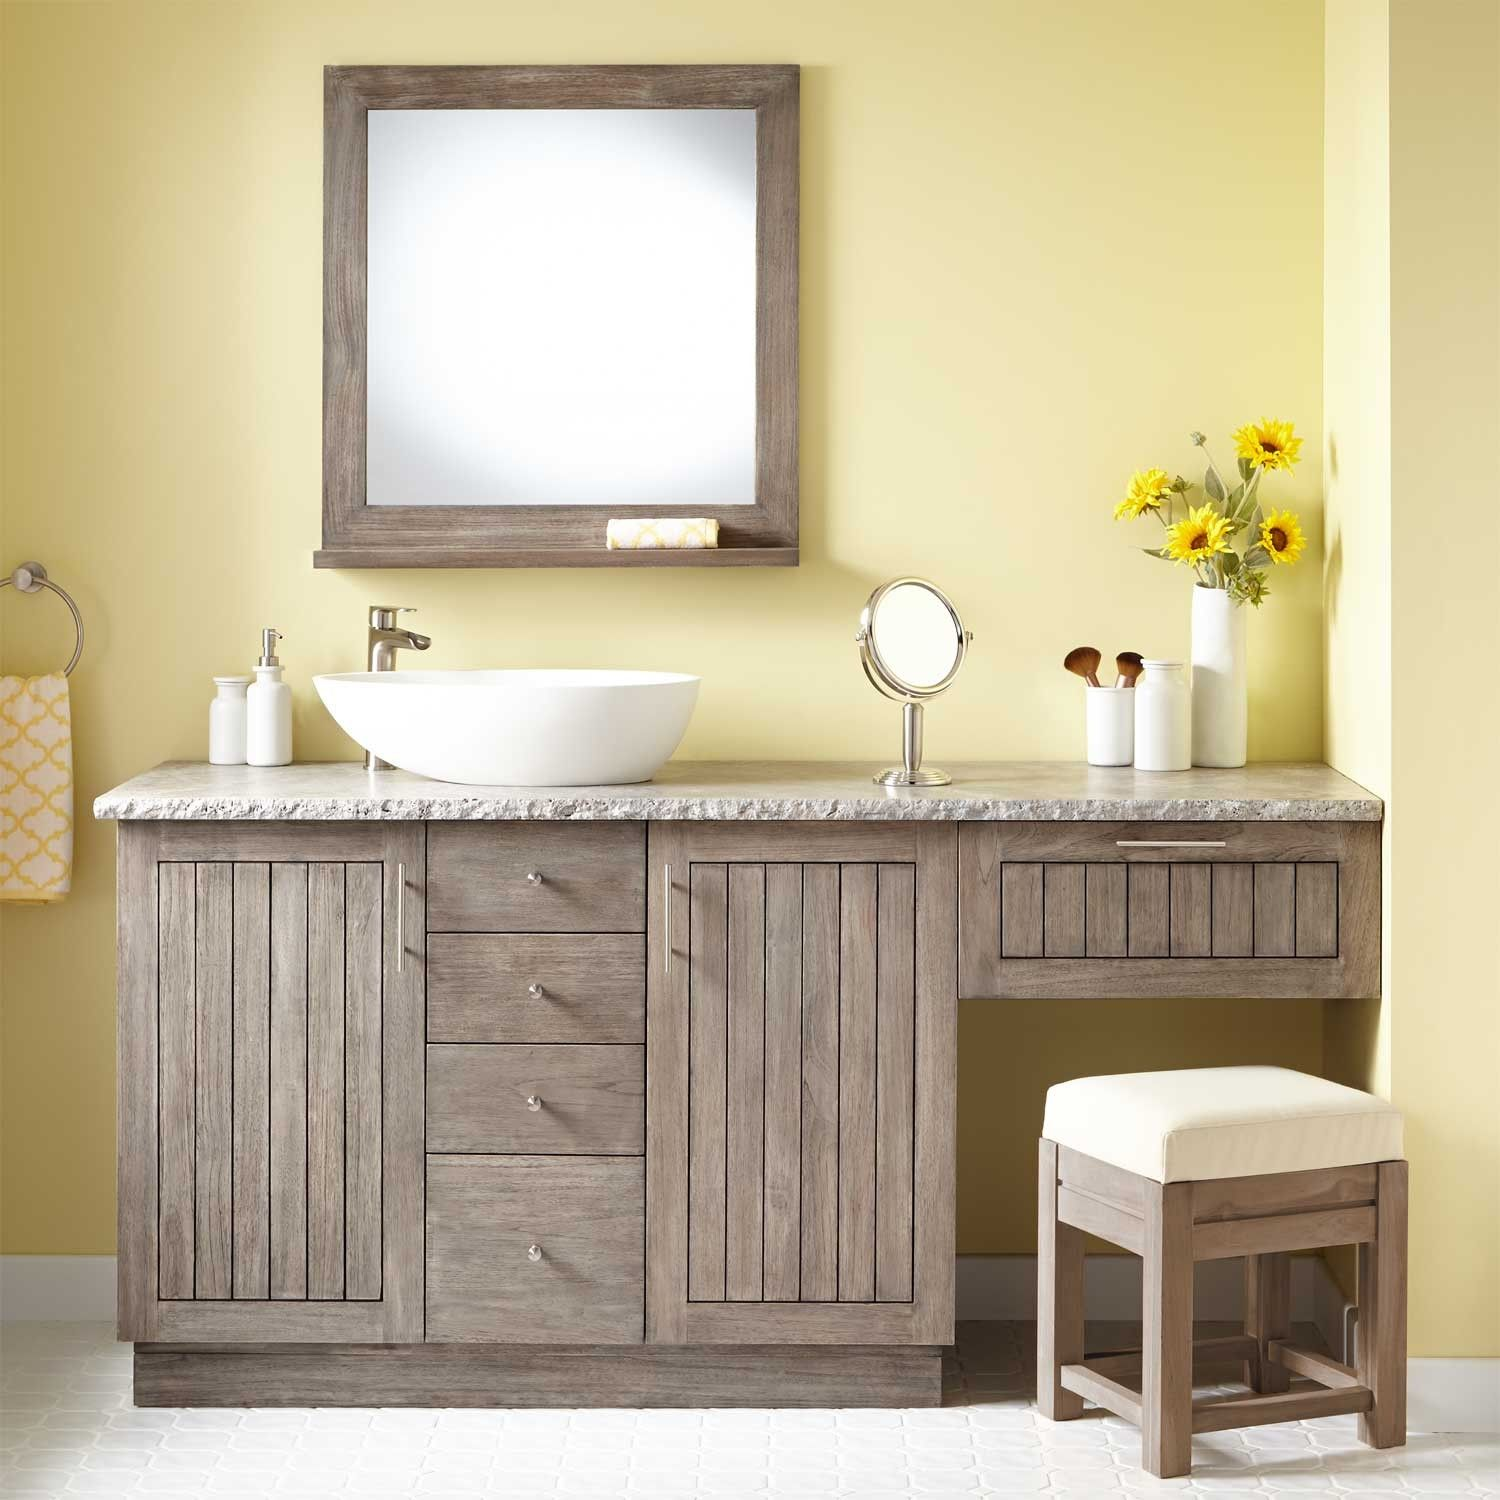 72 montara teak vessel sink vanity with makeup area - 72 inch single sink bathroom vanity ...